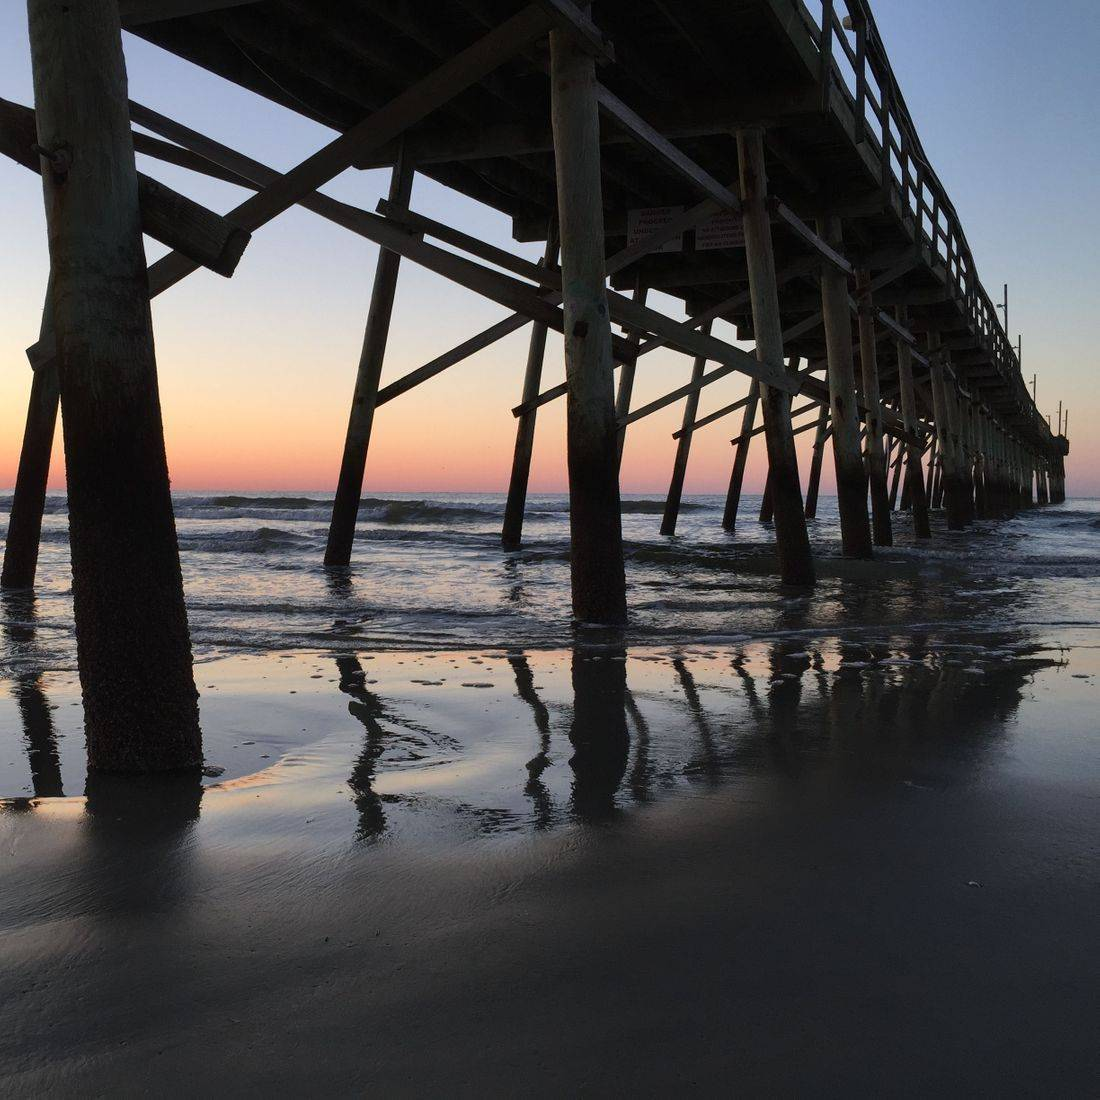 Sunrise, Beach, Pier, Ocean, Waves, Sky, Sunset Beach, North Carolina